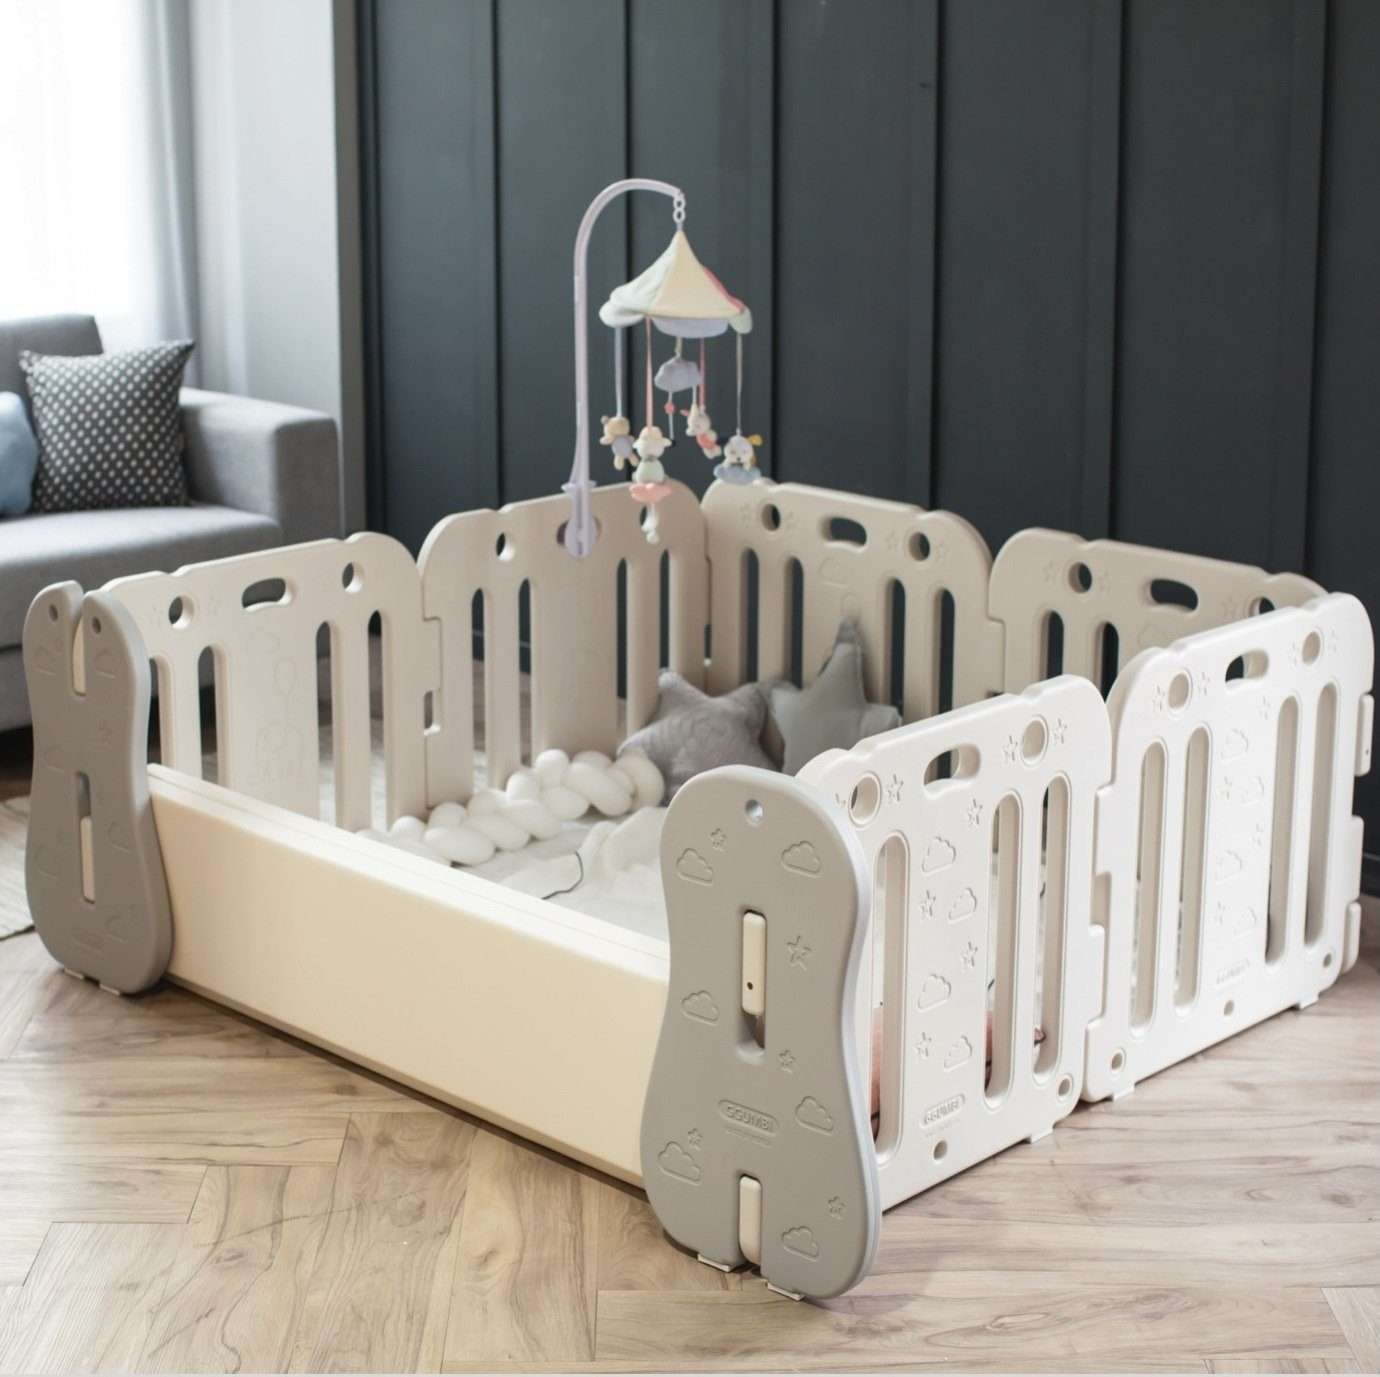 Baby Room Set - World Guard (inclusive of premium Play mat!)